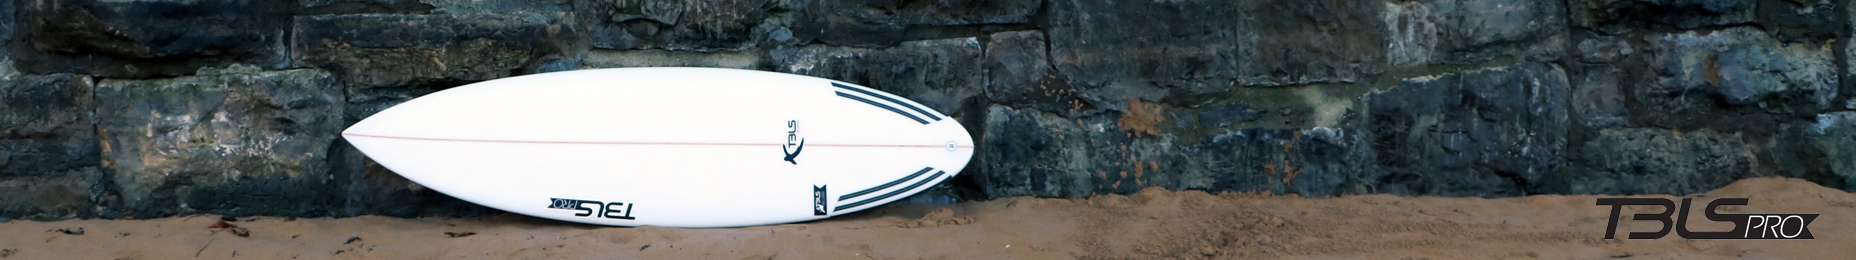 TBLS PRO SURFBOARDS